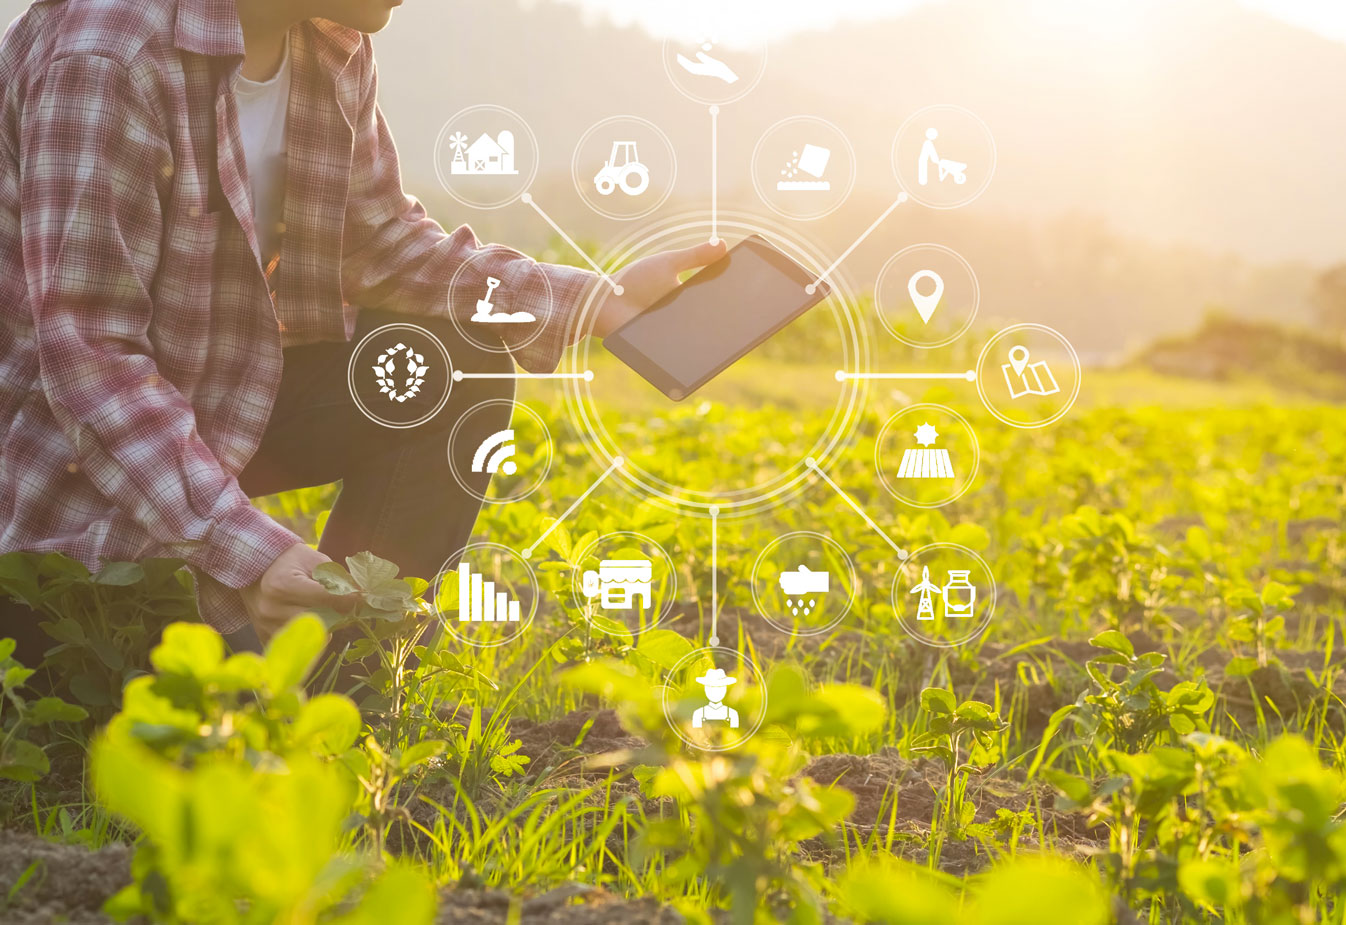 It's digital time for Les Domaines Agricoles